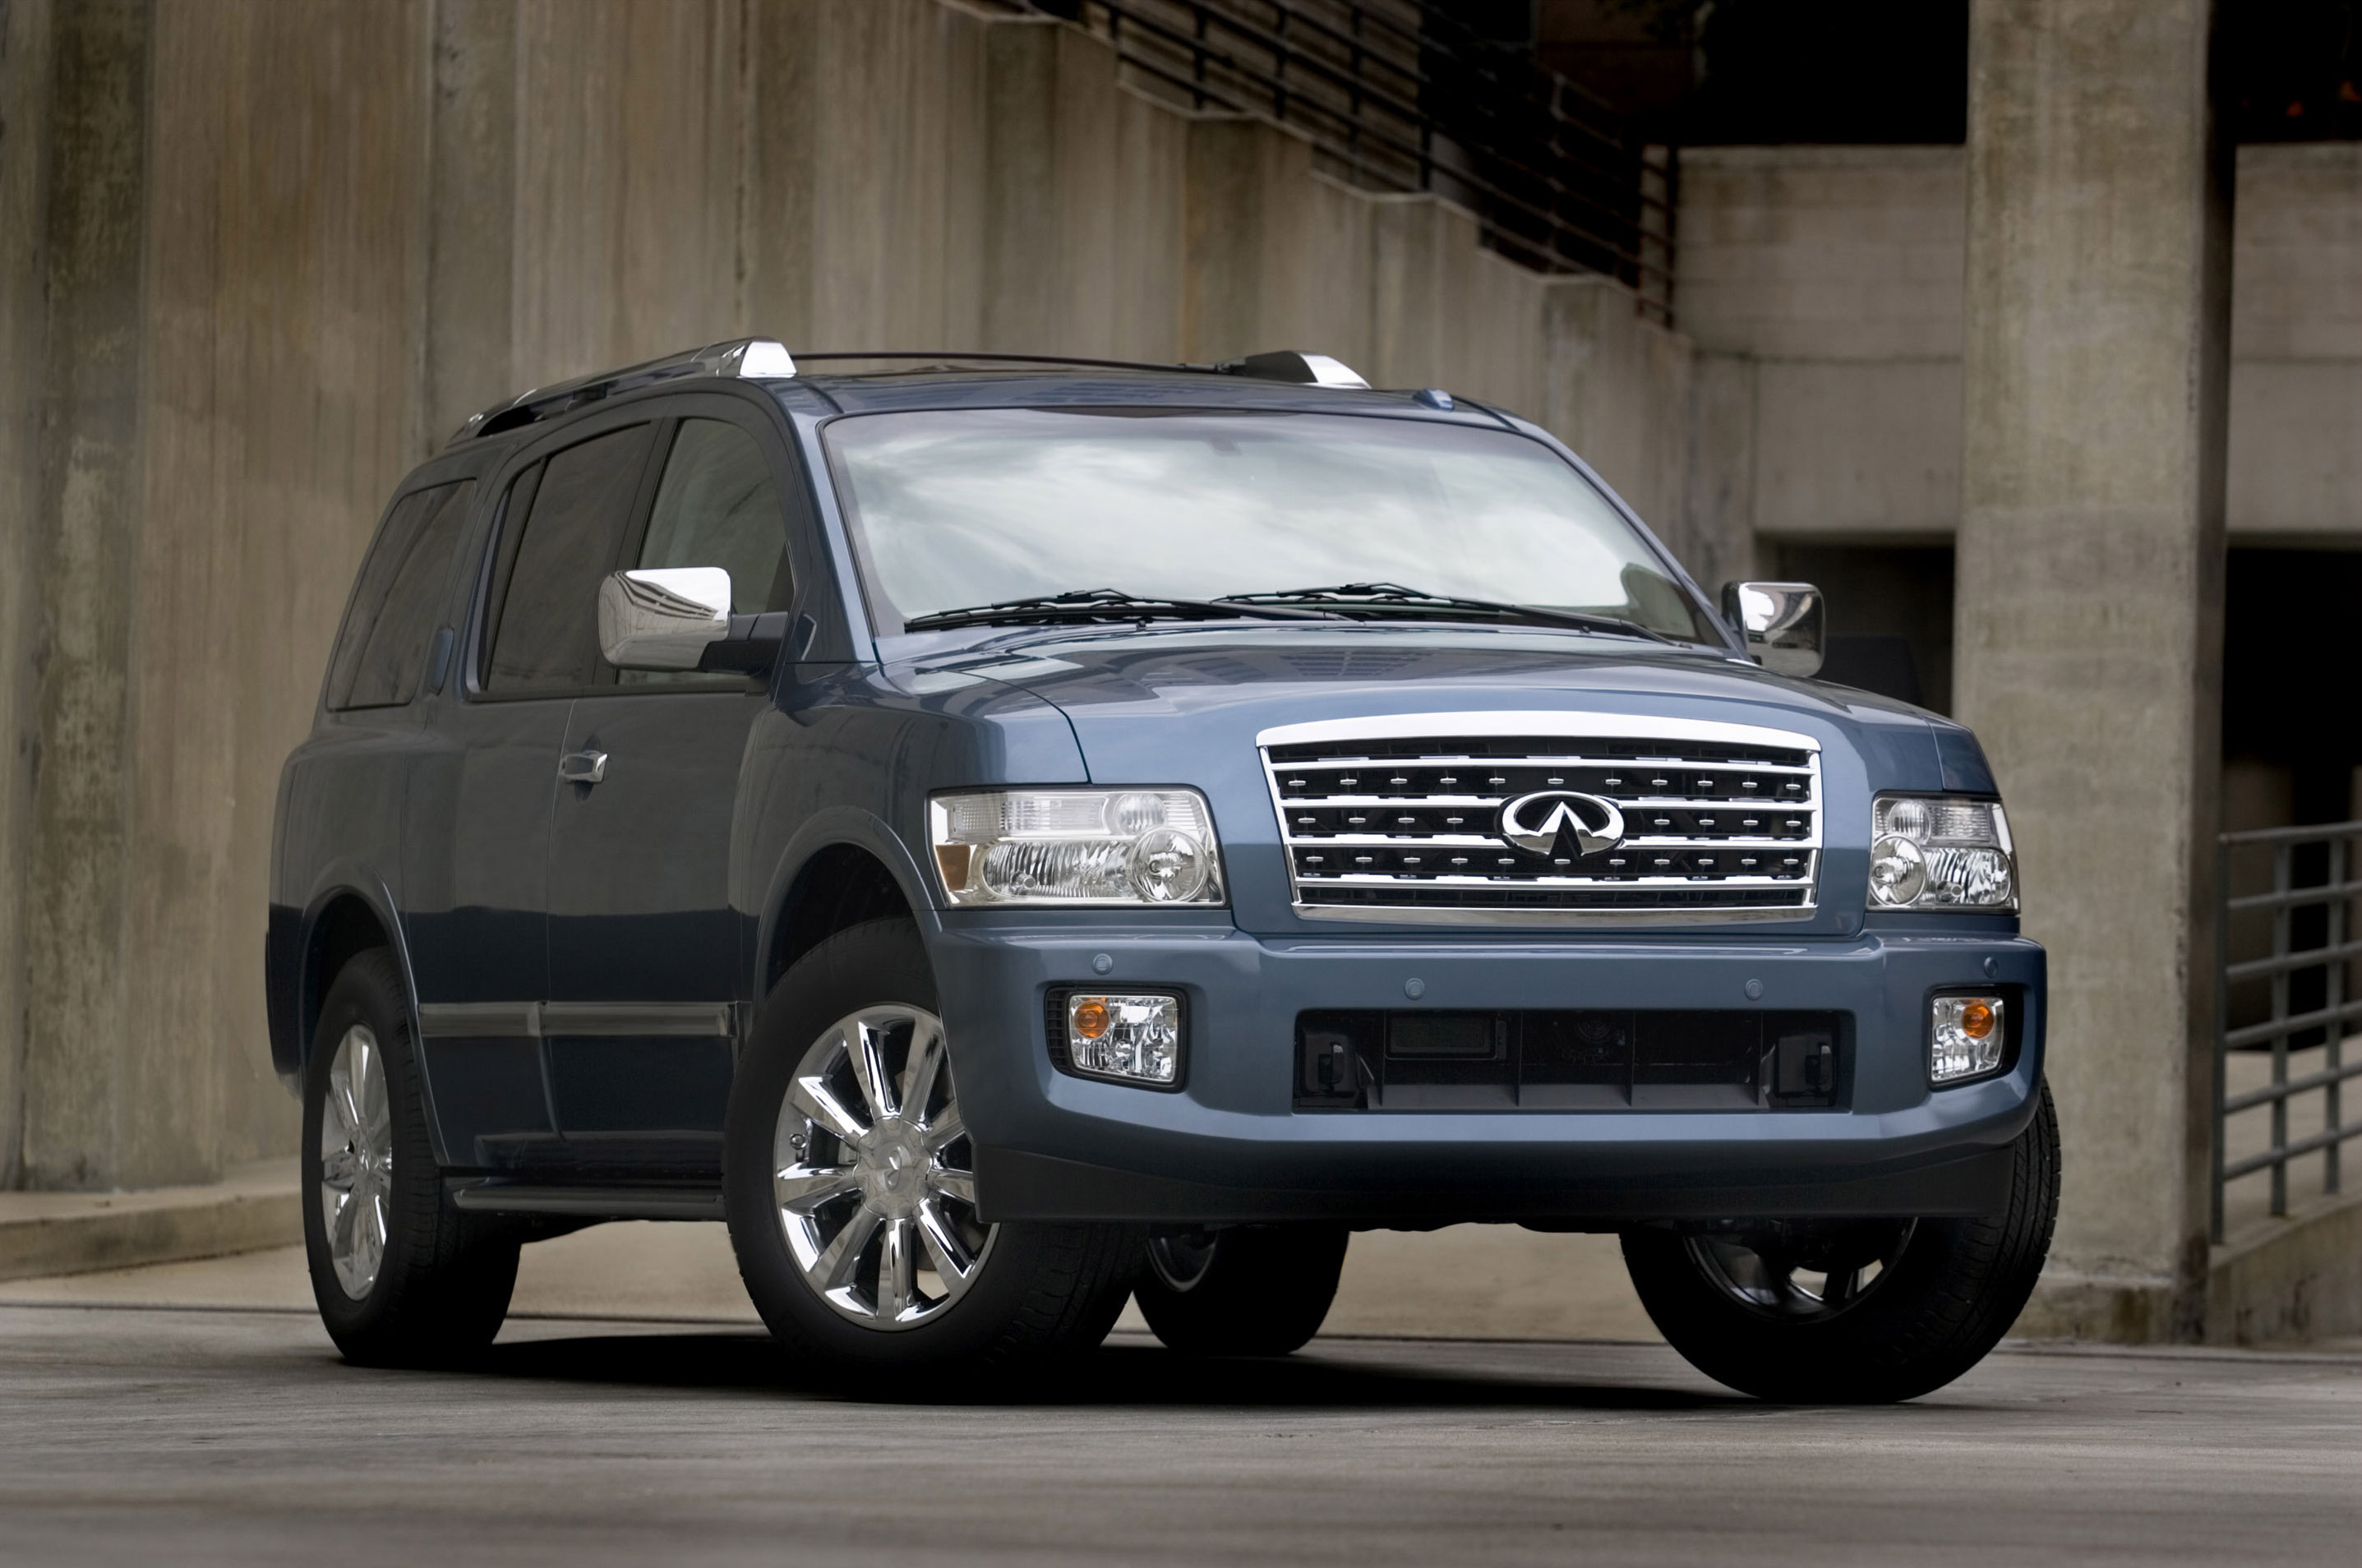 the drive category dsc of joy infiniti suv for sale size infinity full